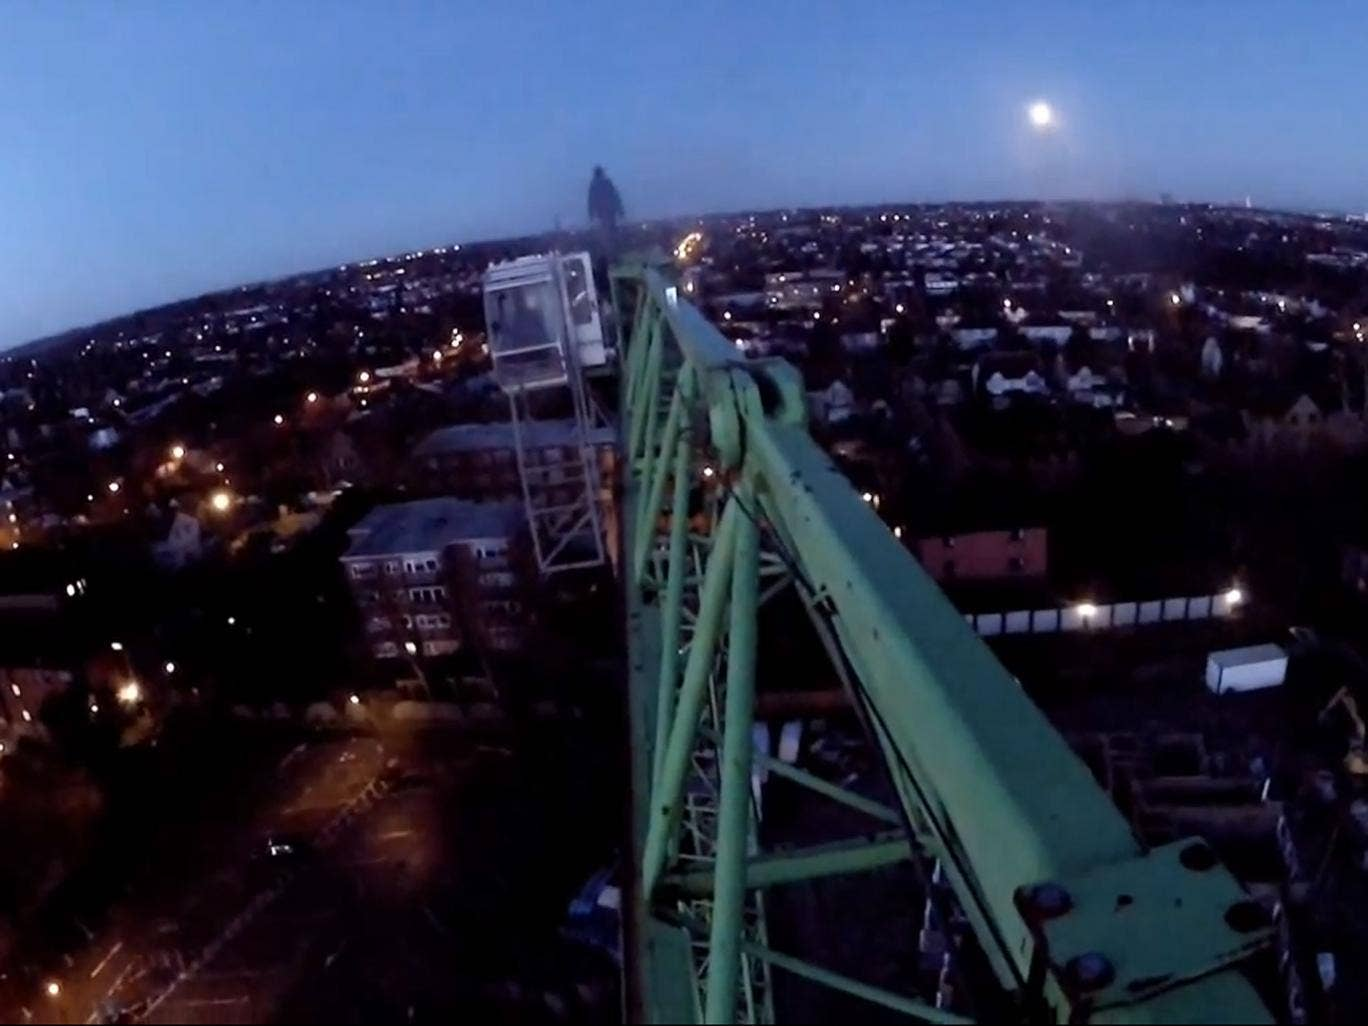 One of the climbers stands at the end of the crane, while he's filmed by others